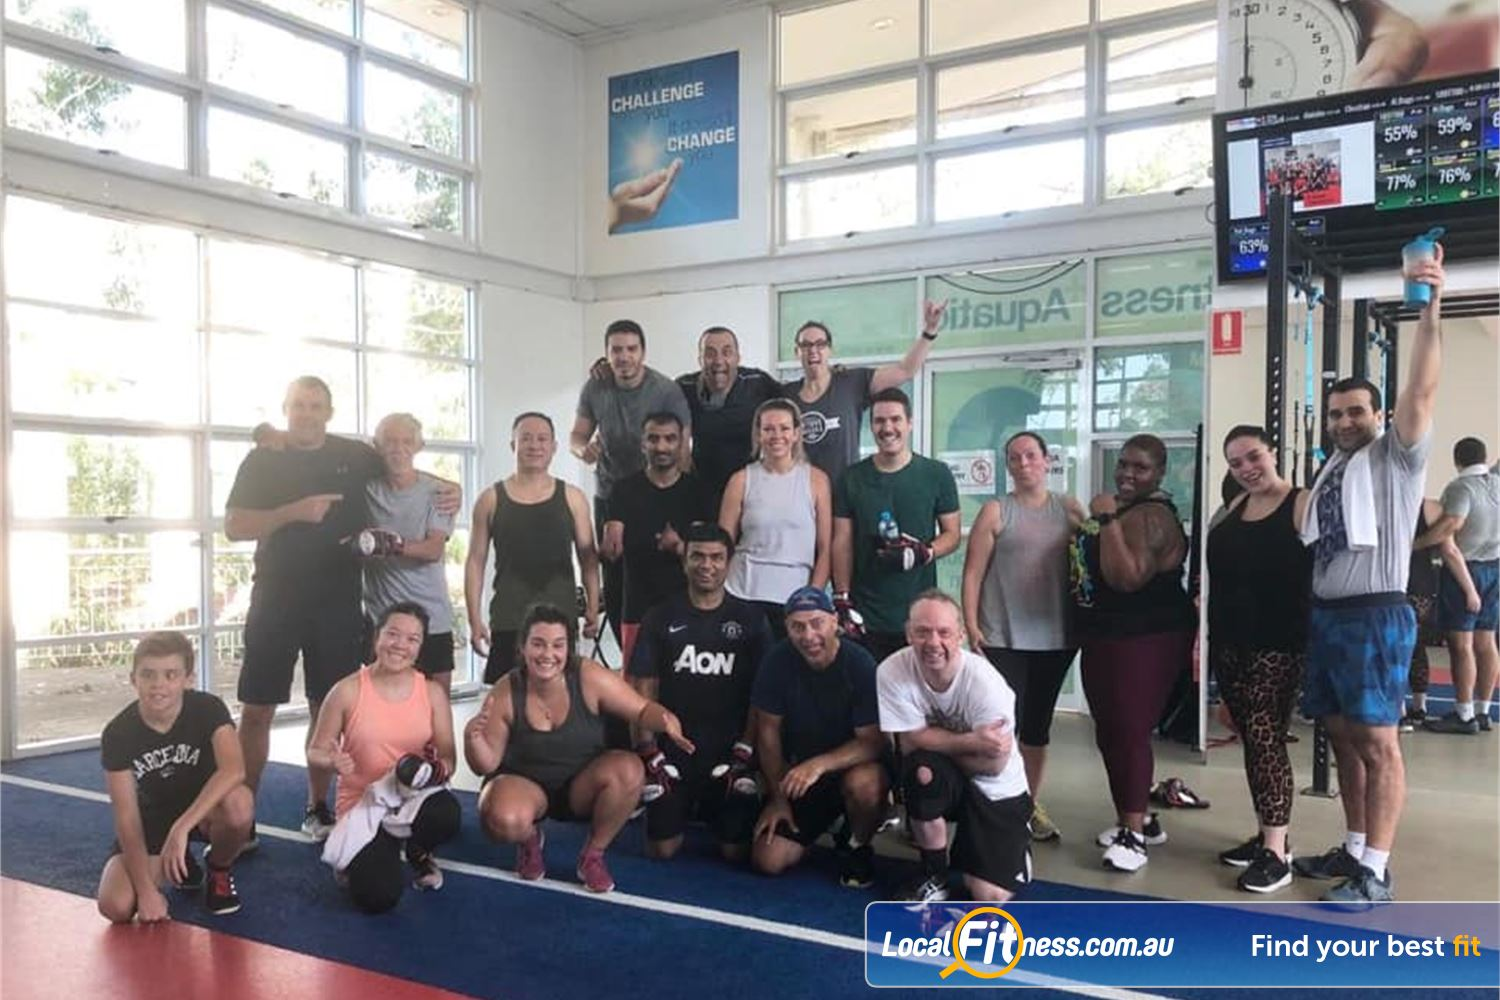 North Ryde Fitness & Aquatic Near Marsfield Experience the fun of our HighLow functional training classes.